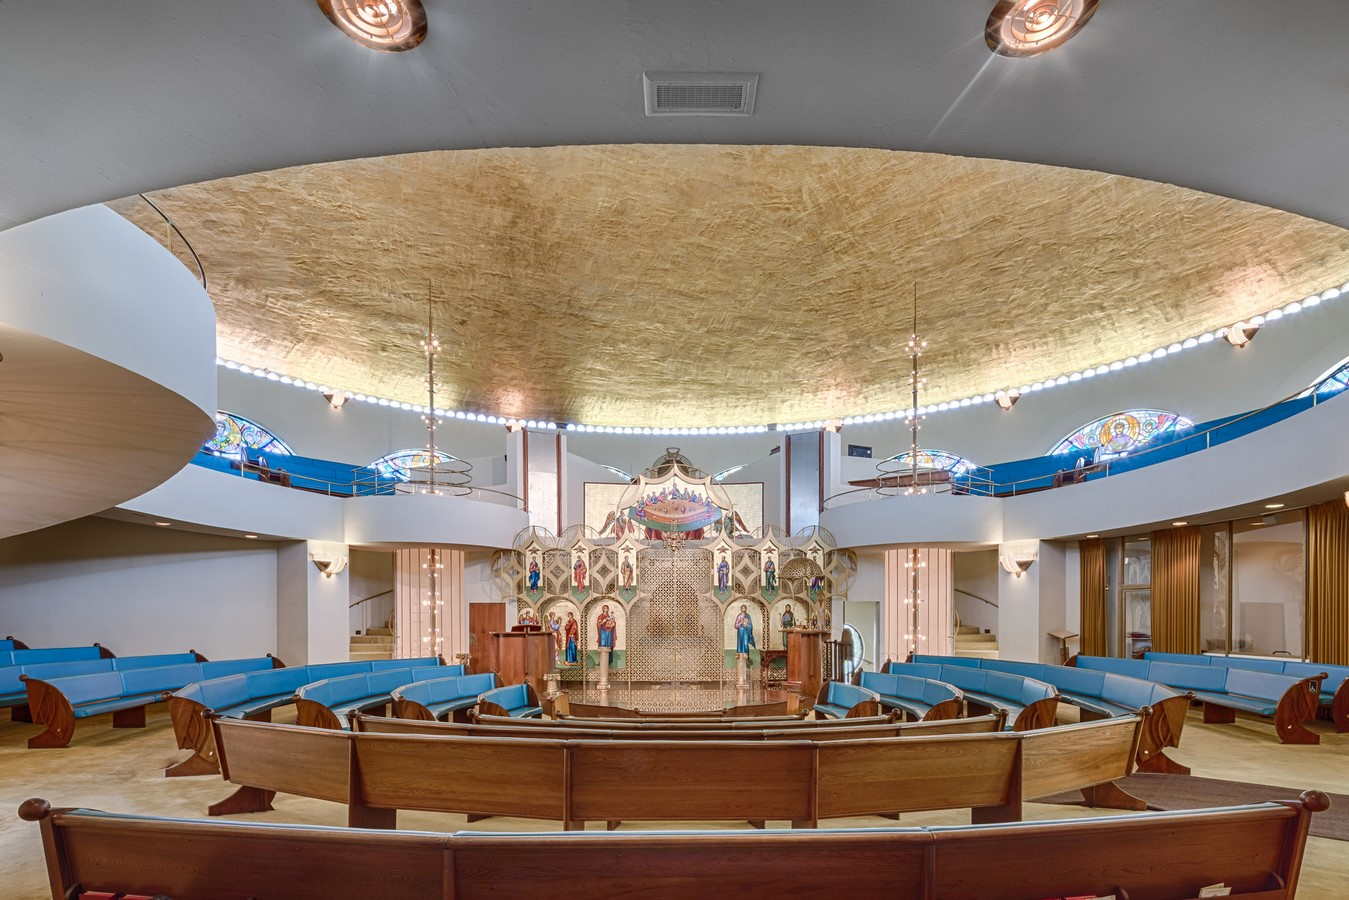 Annunciation Greek Orthodox Church in Wauwatosa, Wisconsin by Ar. Frank Llyod Wright - Sheet1